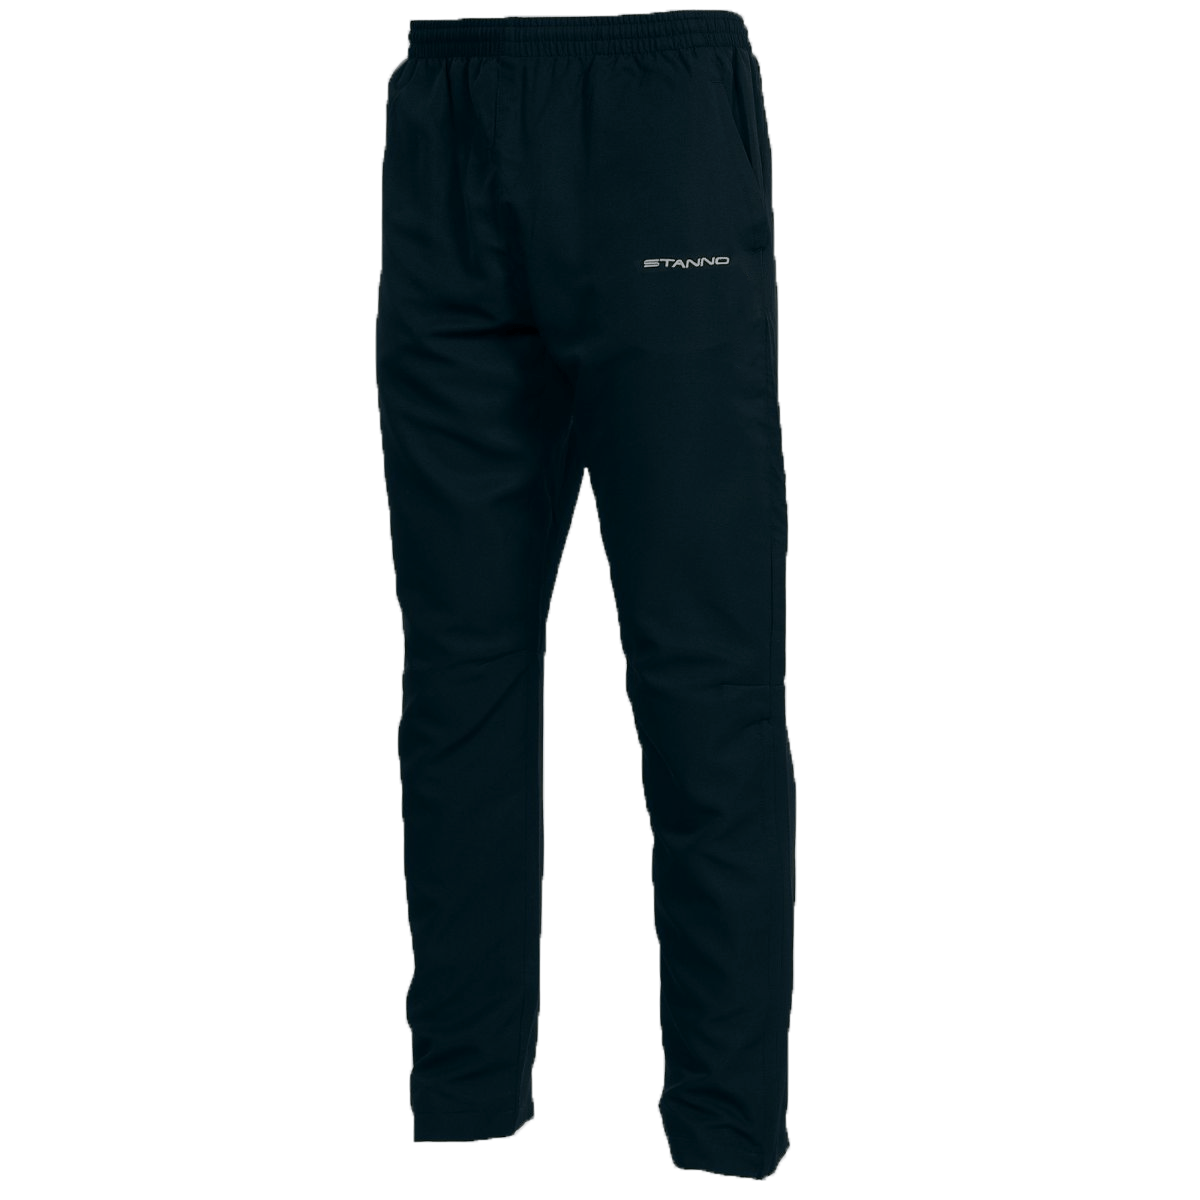 STNO Men's Activewear Snug Poly Trousers Men's Trousers SRK Black S